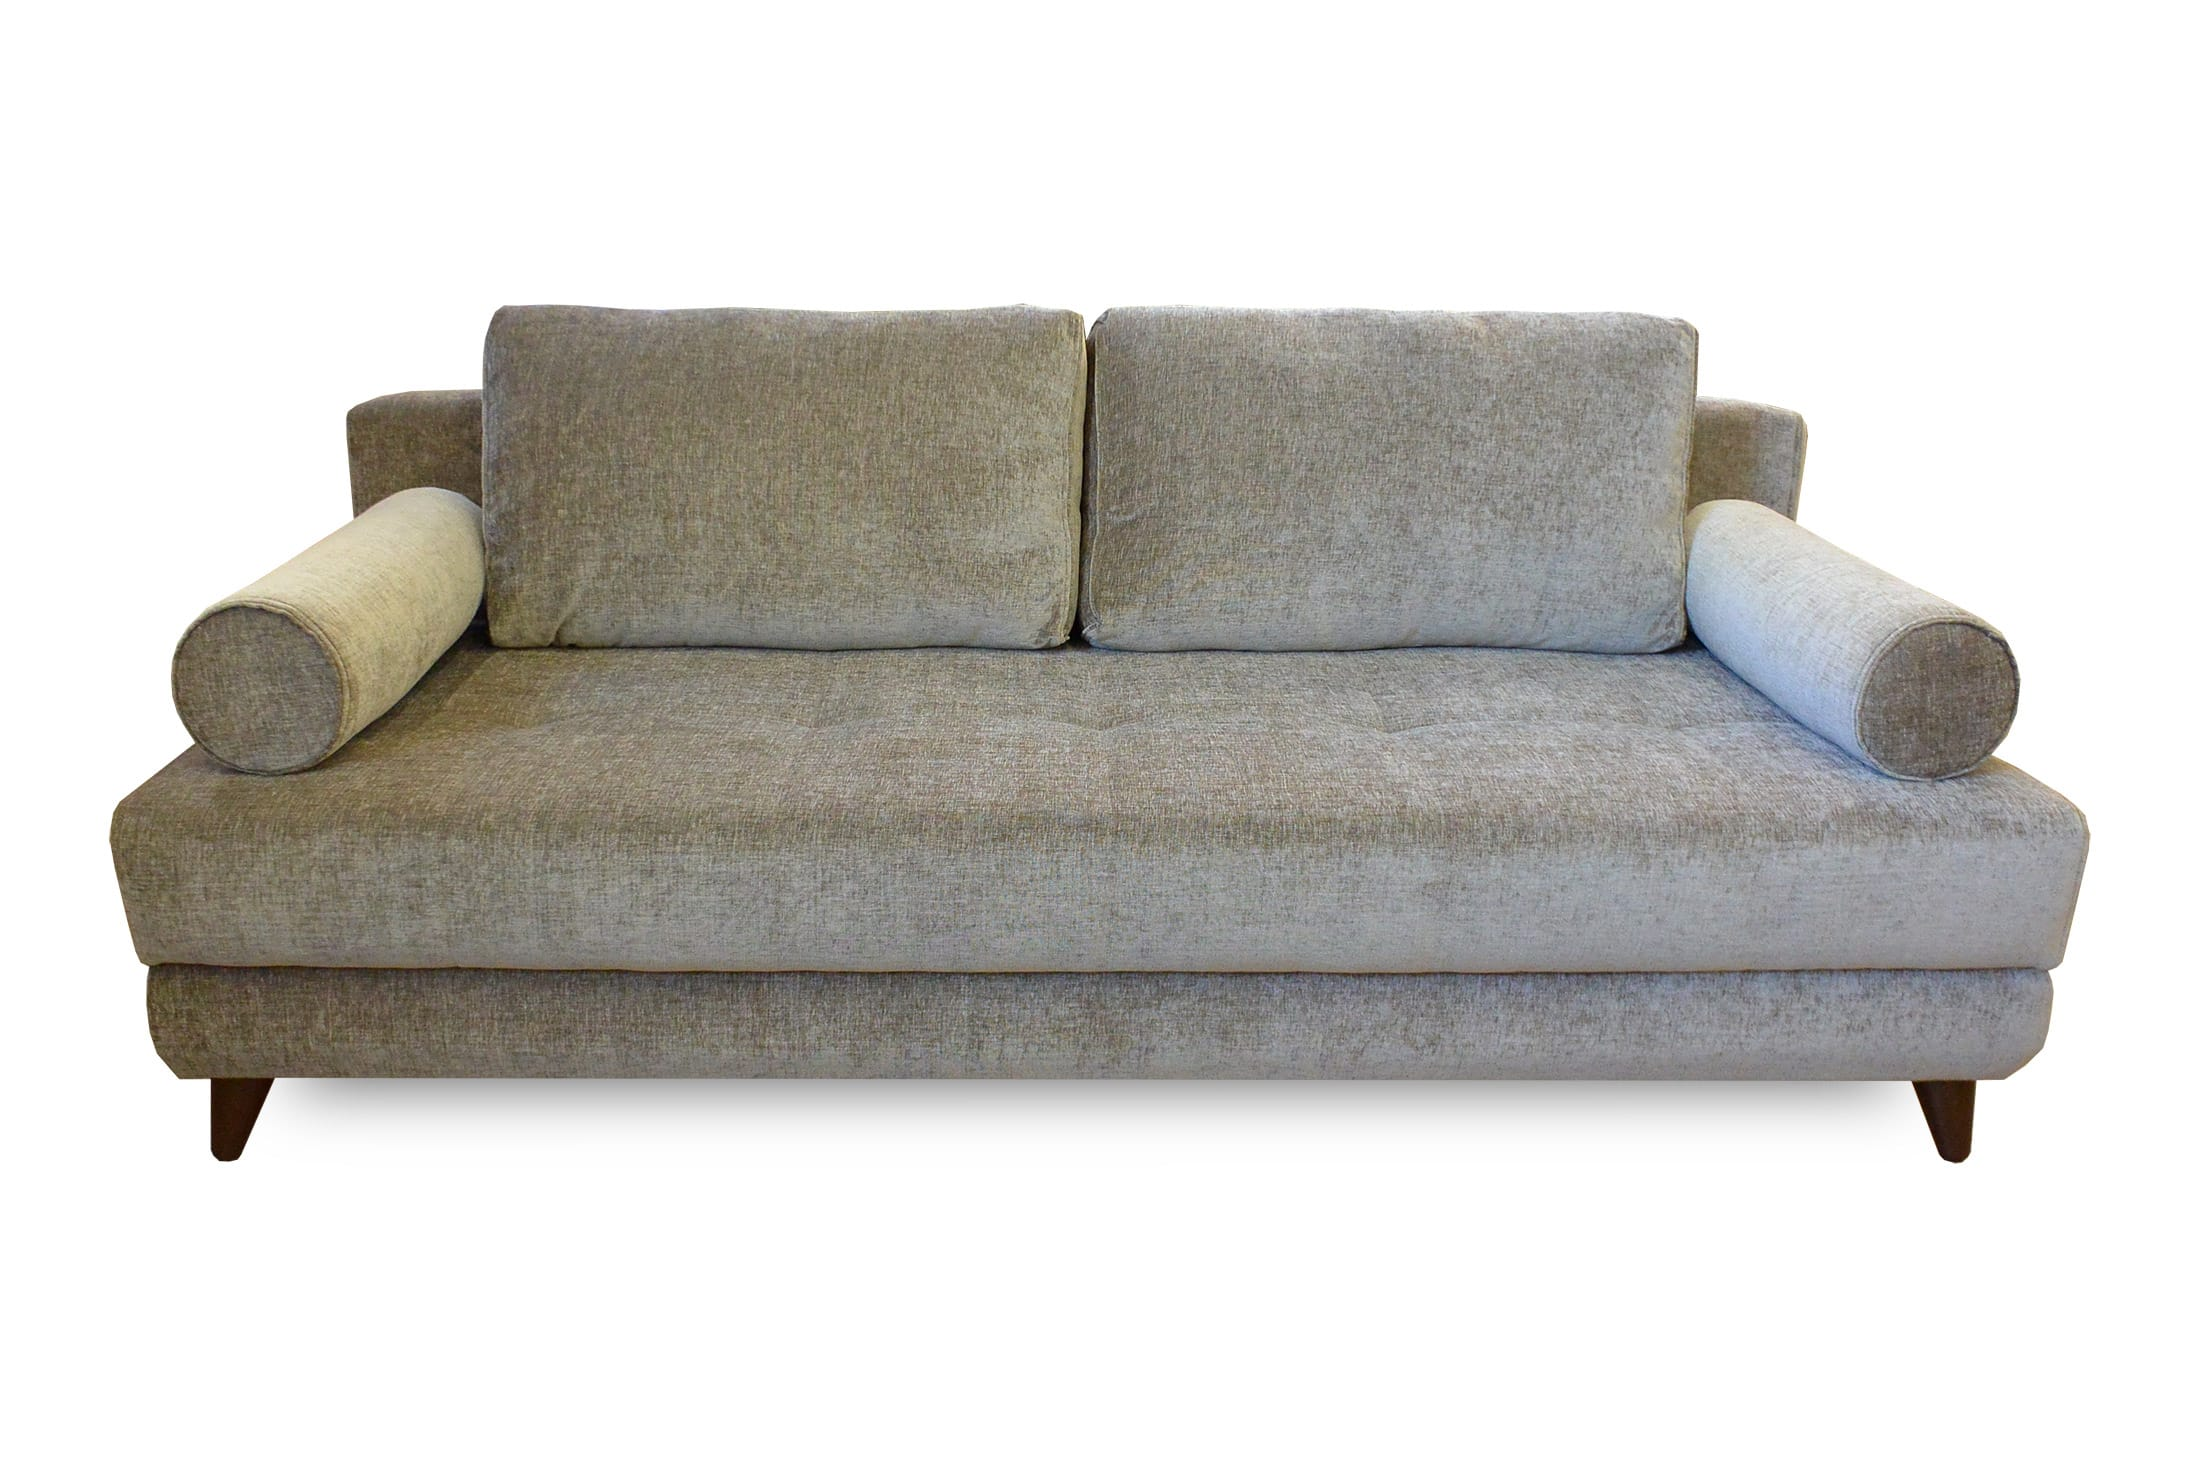 Stella Jennefer Light Brown Convertible Sofa Bed Queen Sleeper By Istikbal Furniture